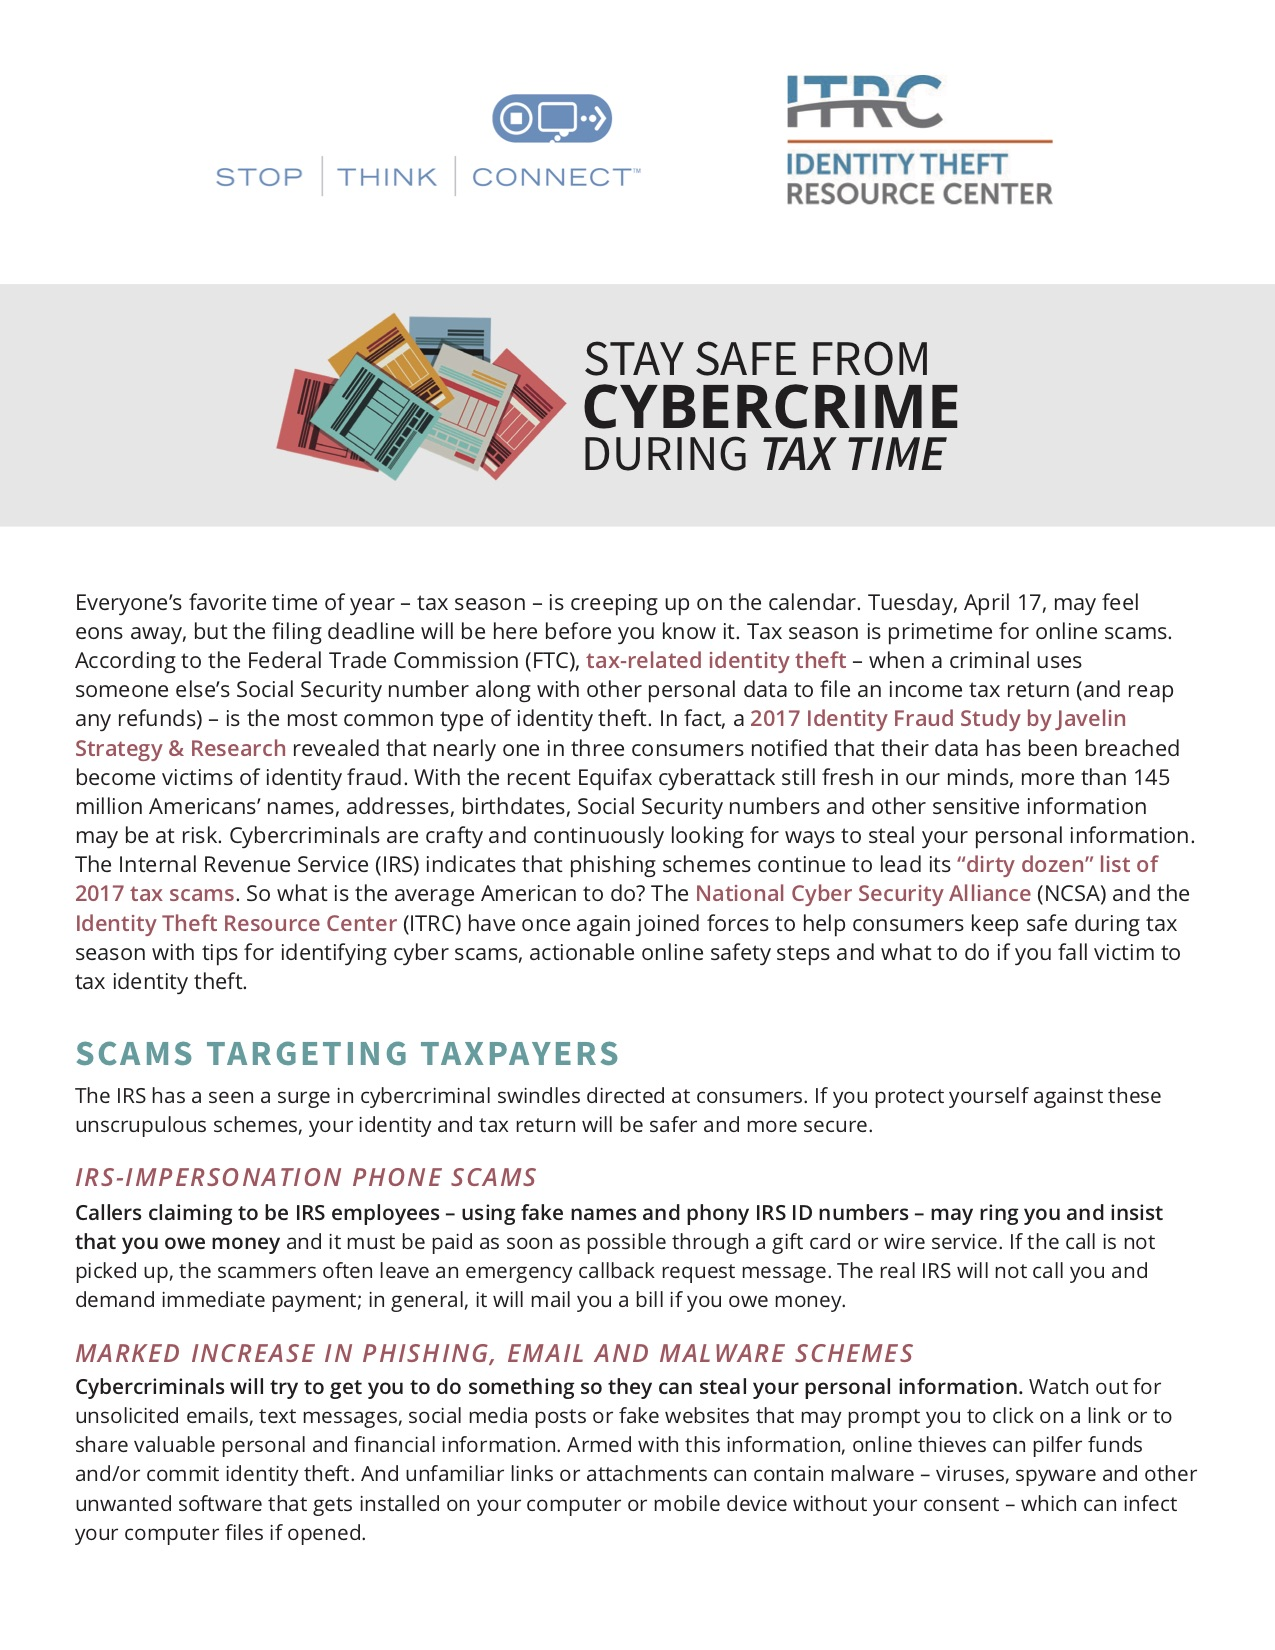 Stay Safe During Tax Time - SCARS™ Insight 1